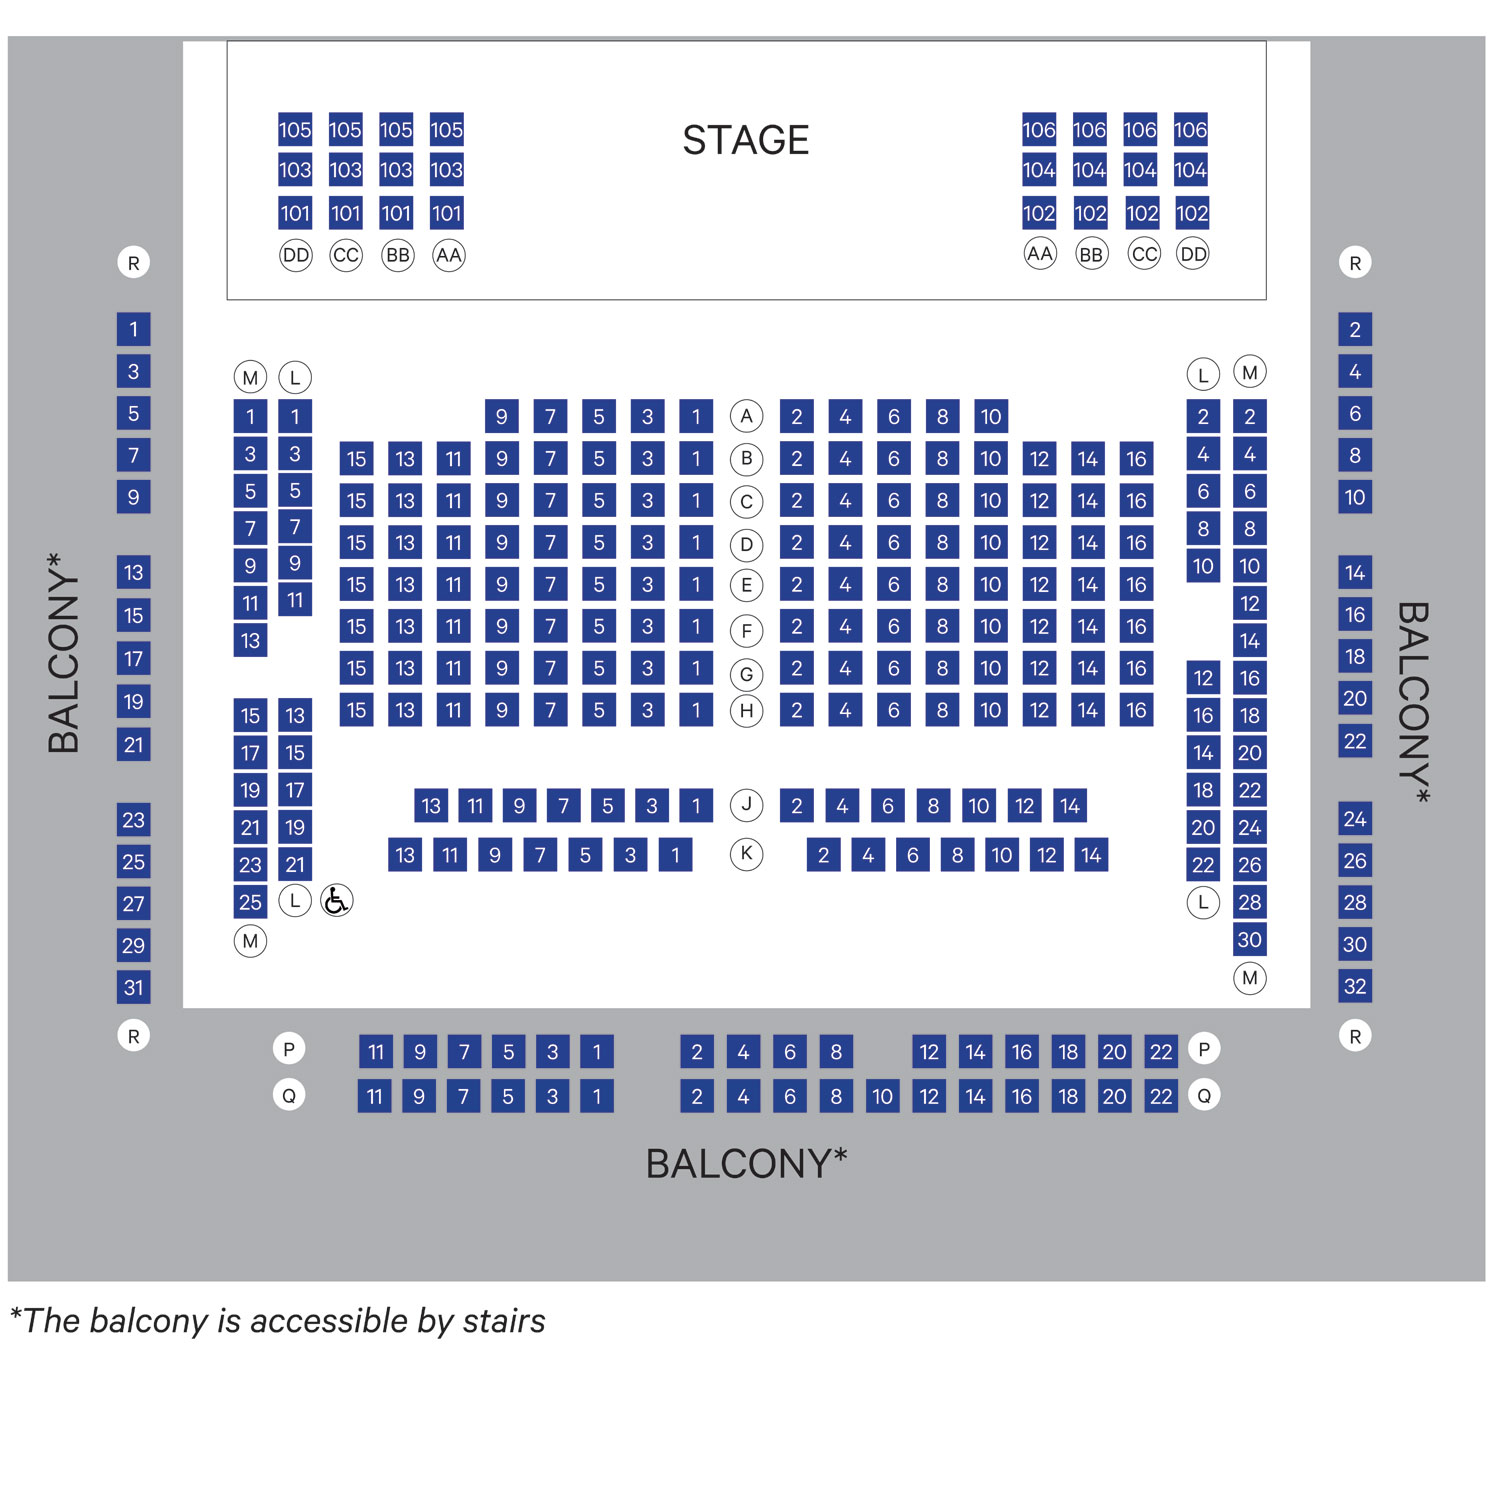 Seating for Saint Joan includes additional seating on stage Please see the special seating chart for locations